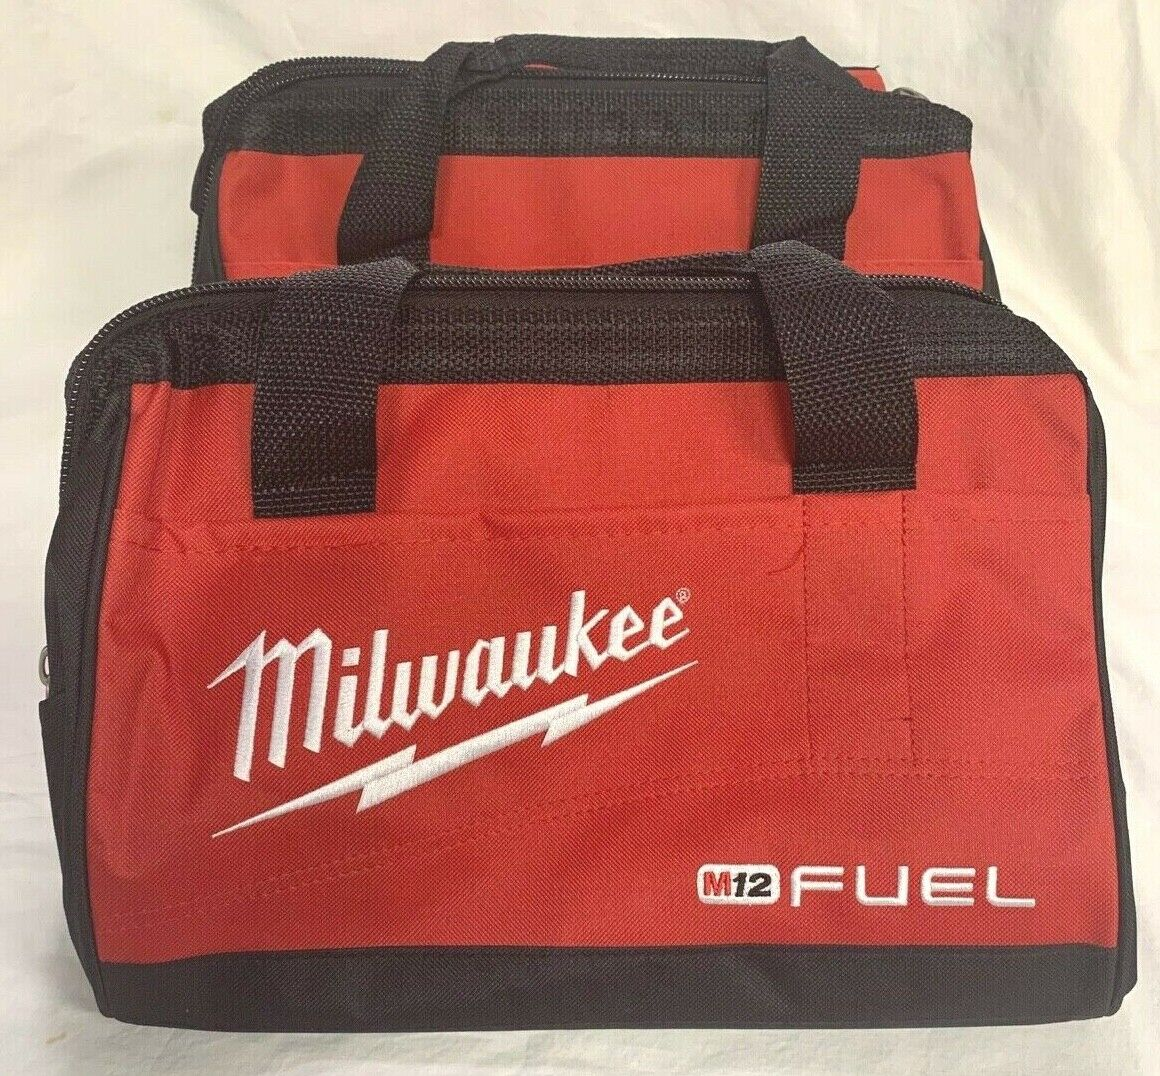 """(2) Milwaukee FUEL 13"""" x 9"""" x 9"""" Contractor Tool Bags (From Kit)"""